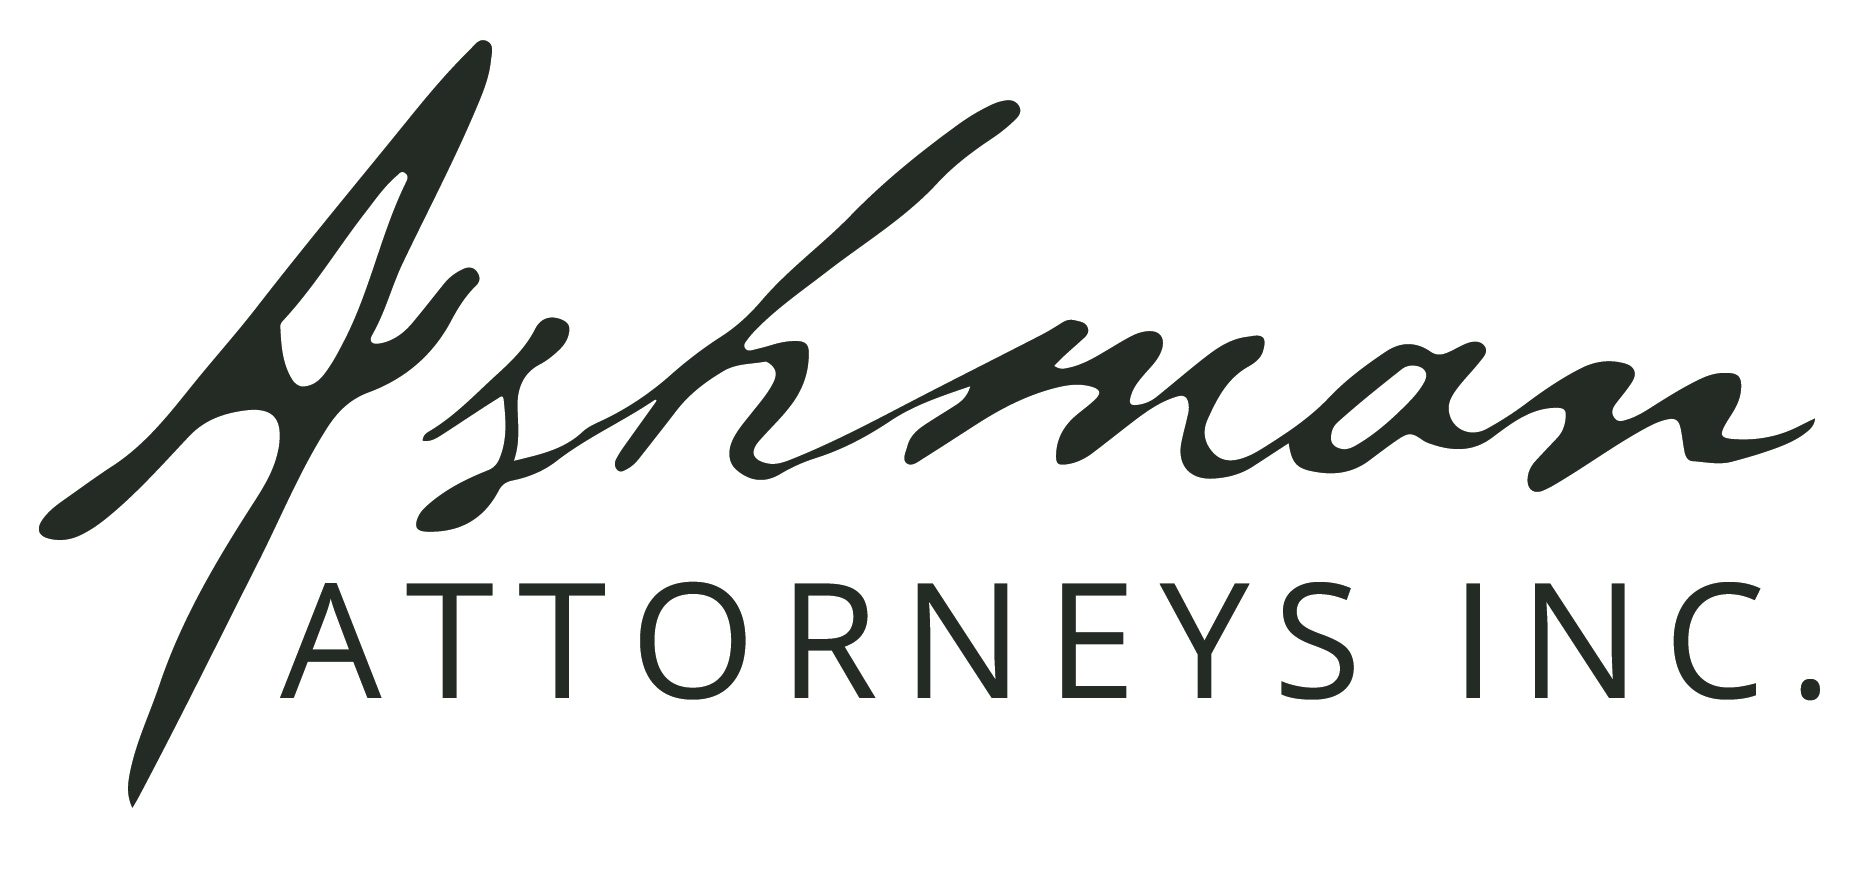 Ashman Attorneys Inc.